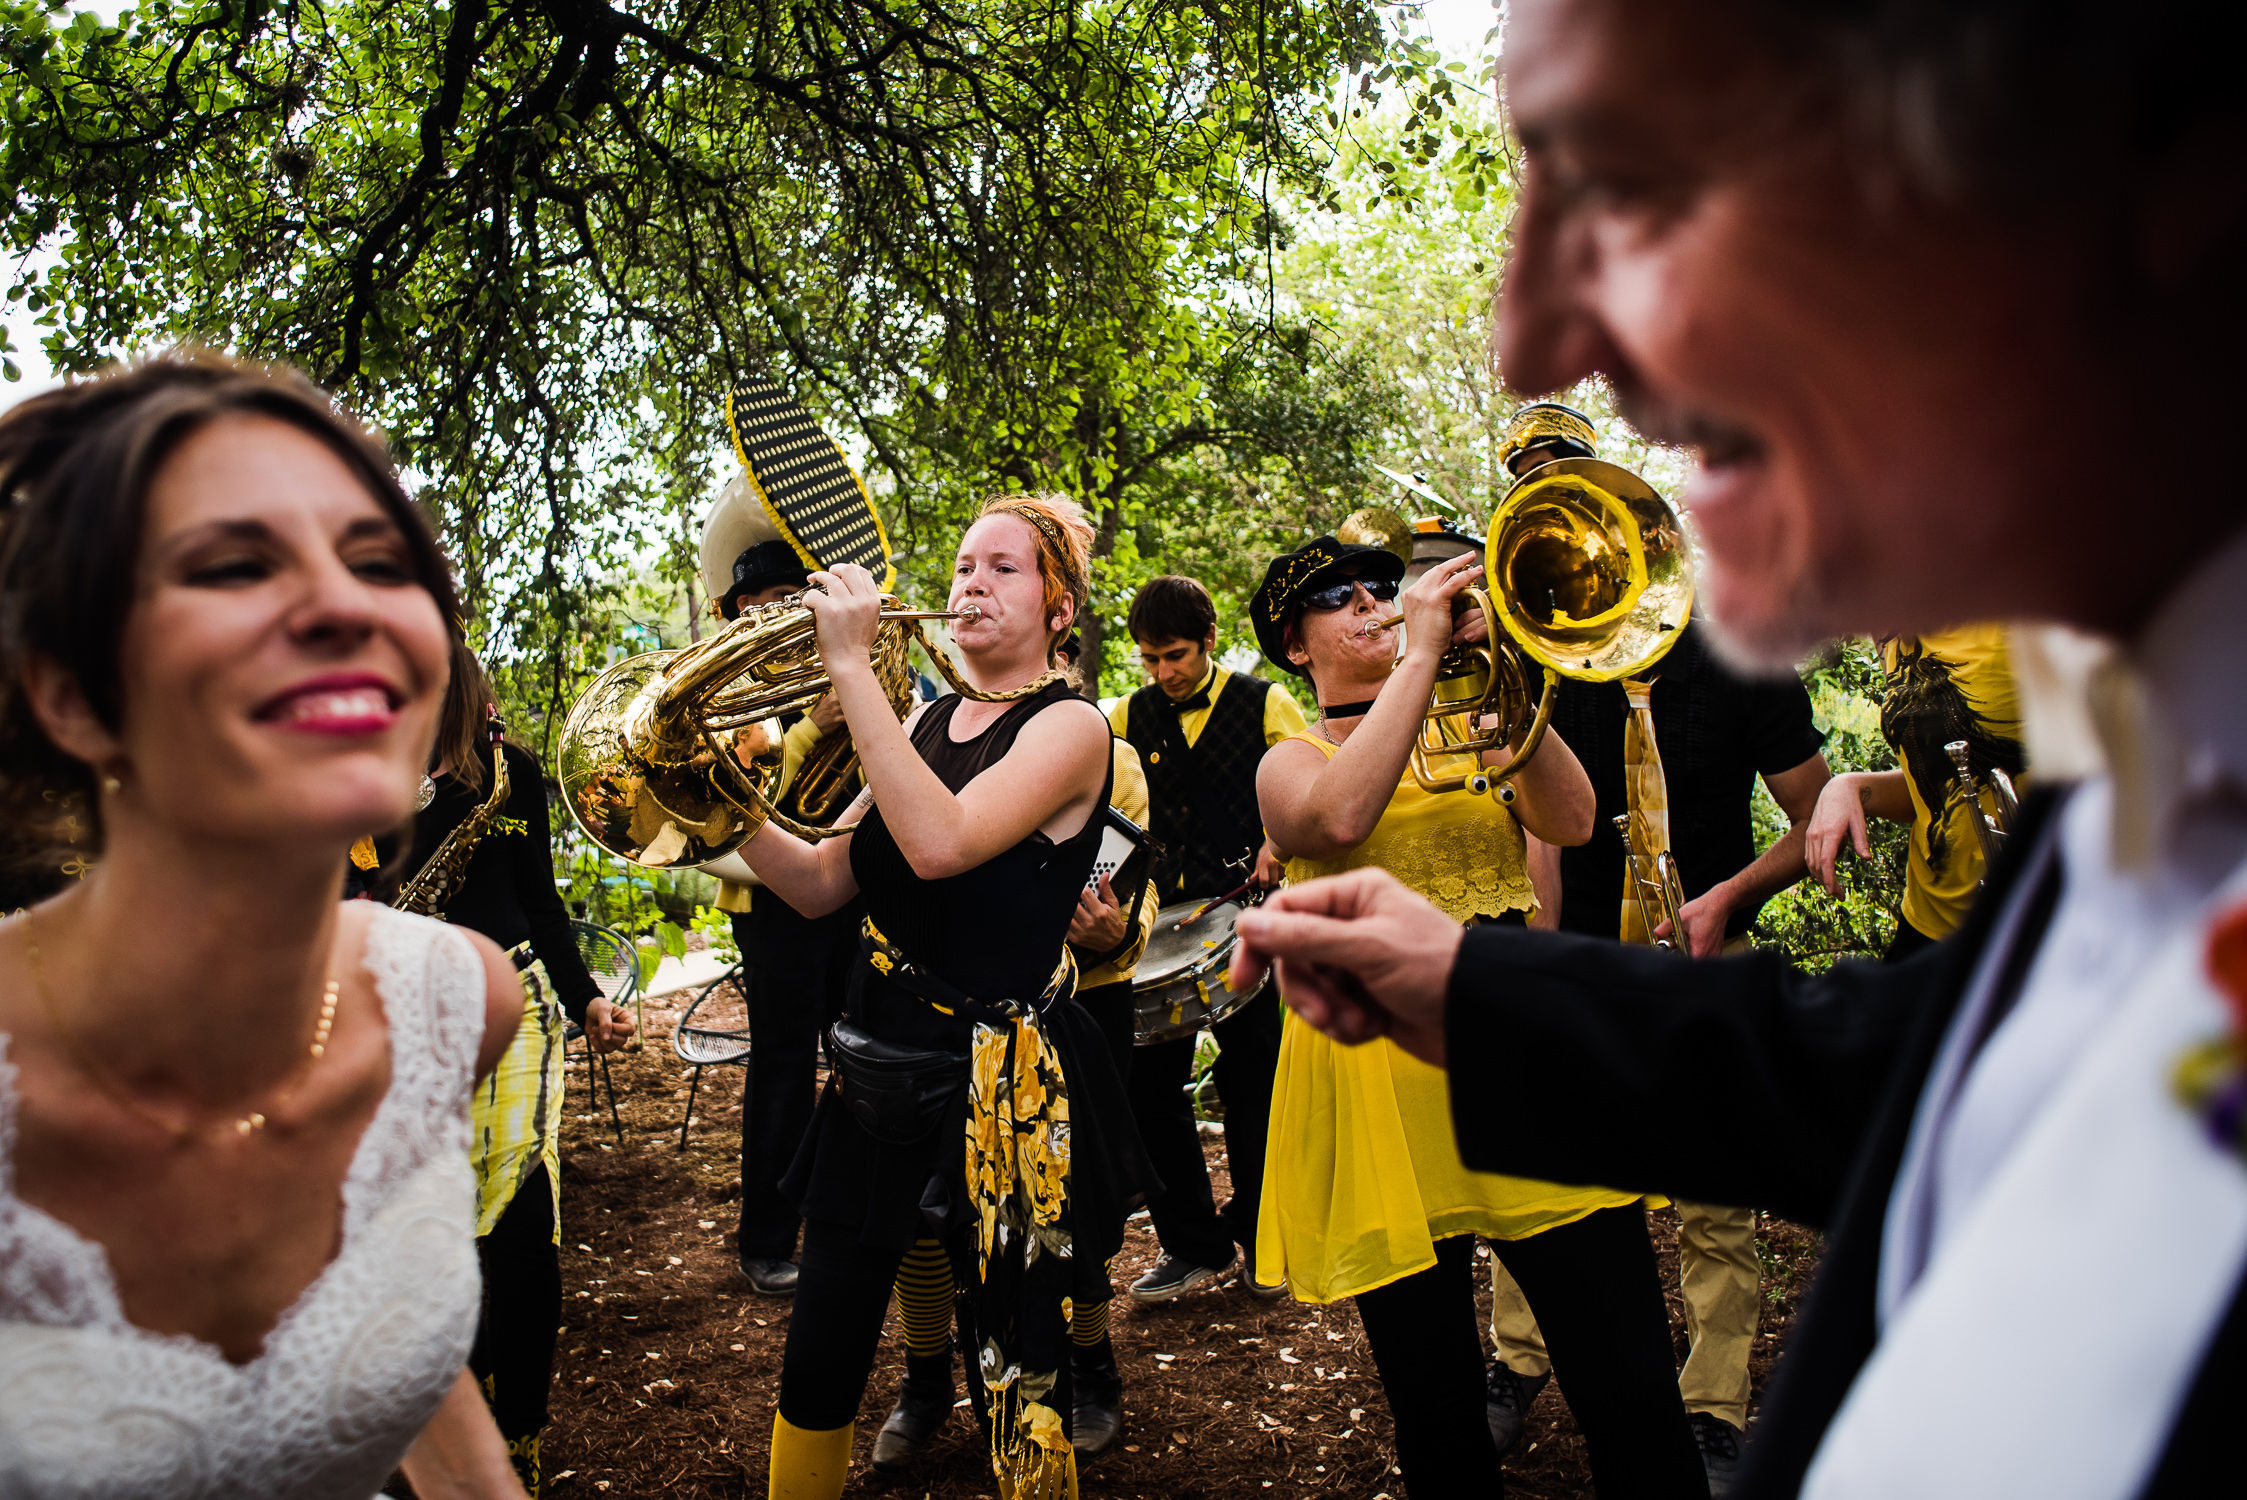 Austin Texas wedding photographers;Minor Mishaps marching band;texas wedding ceremony